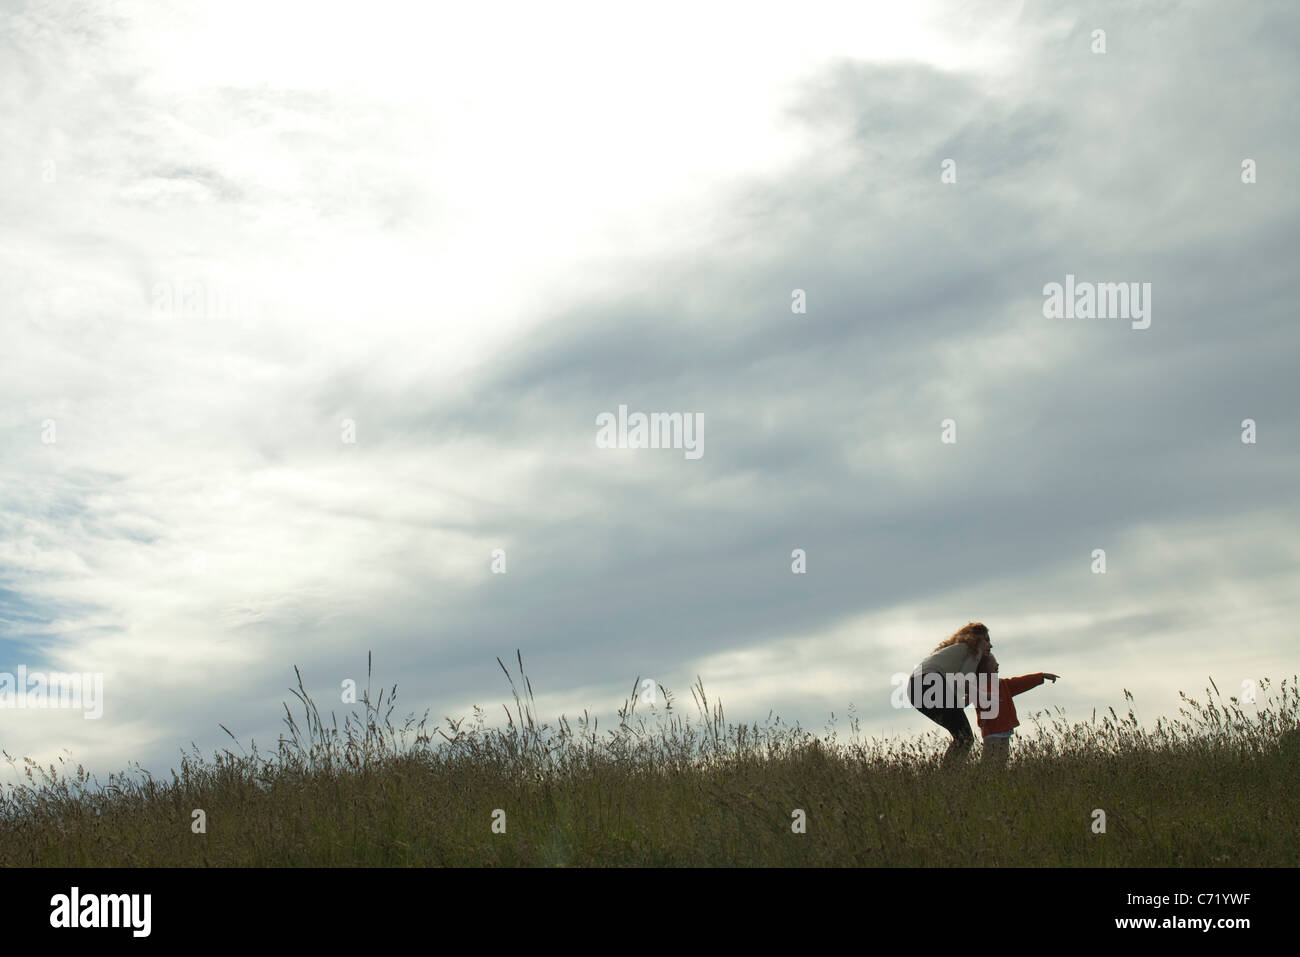 Mother and child standing in meadow, looking at something in the distance - Stock Image